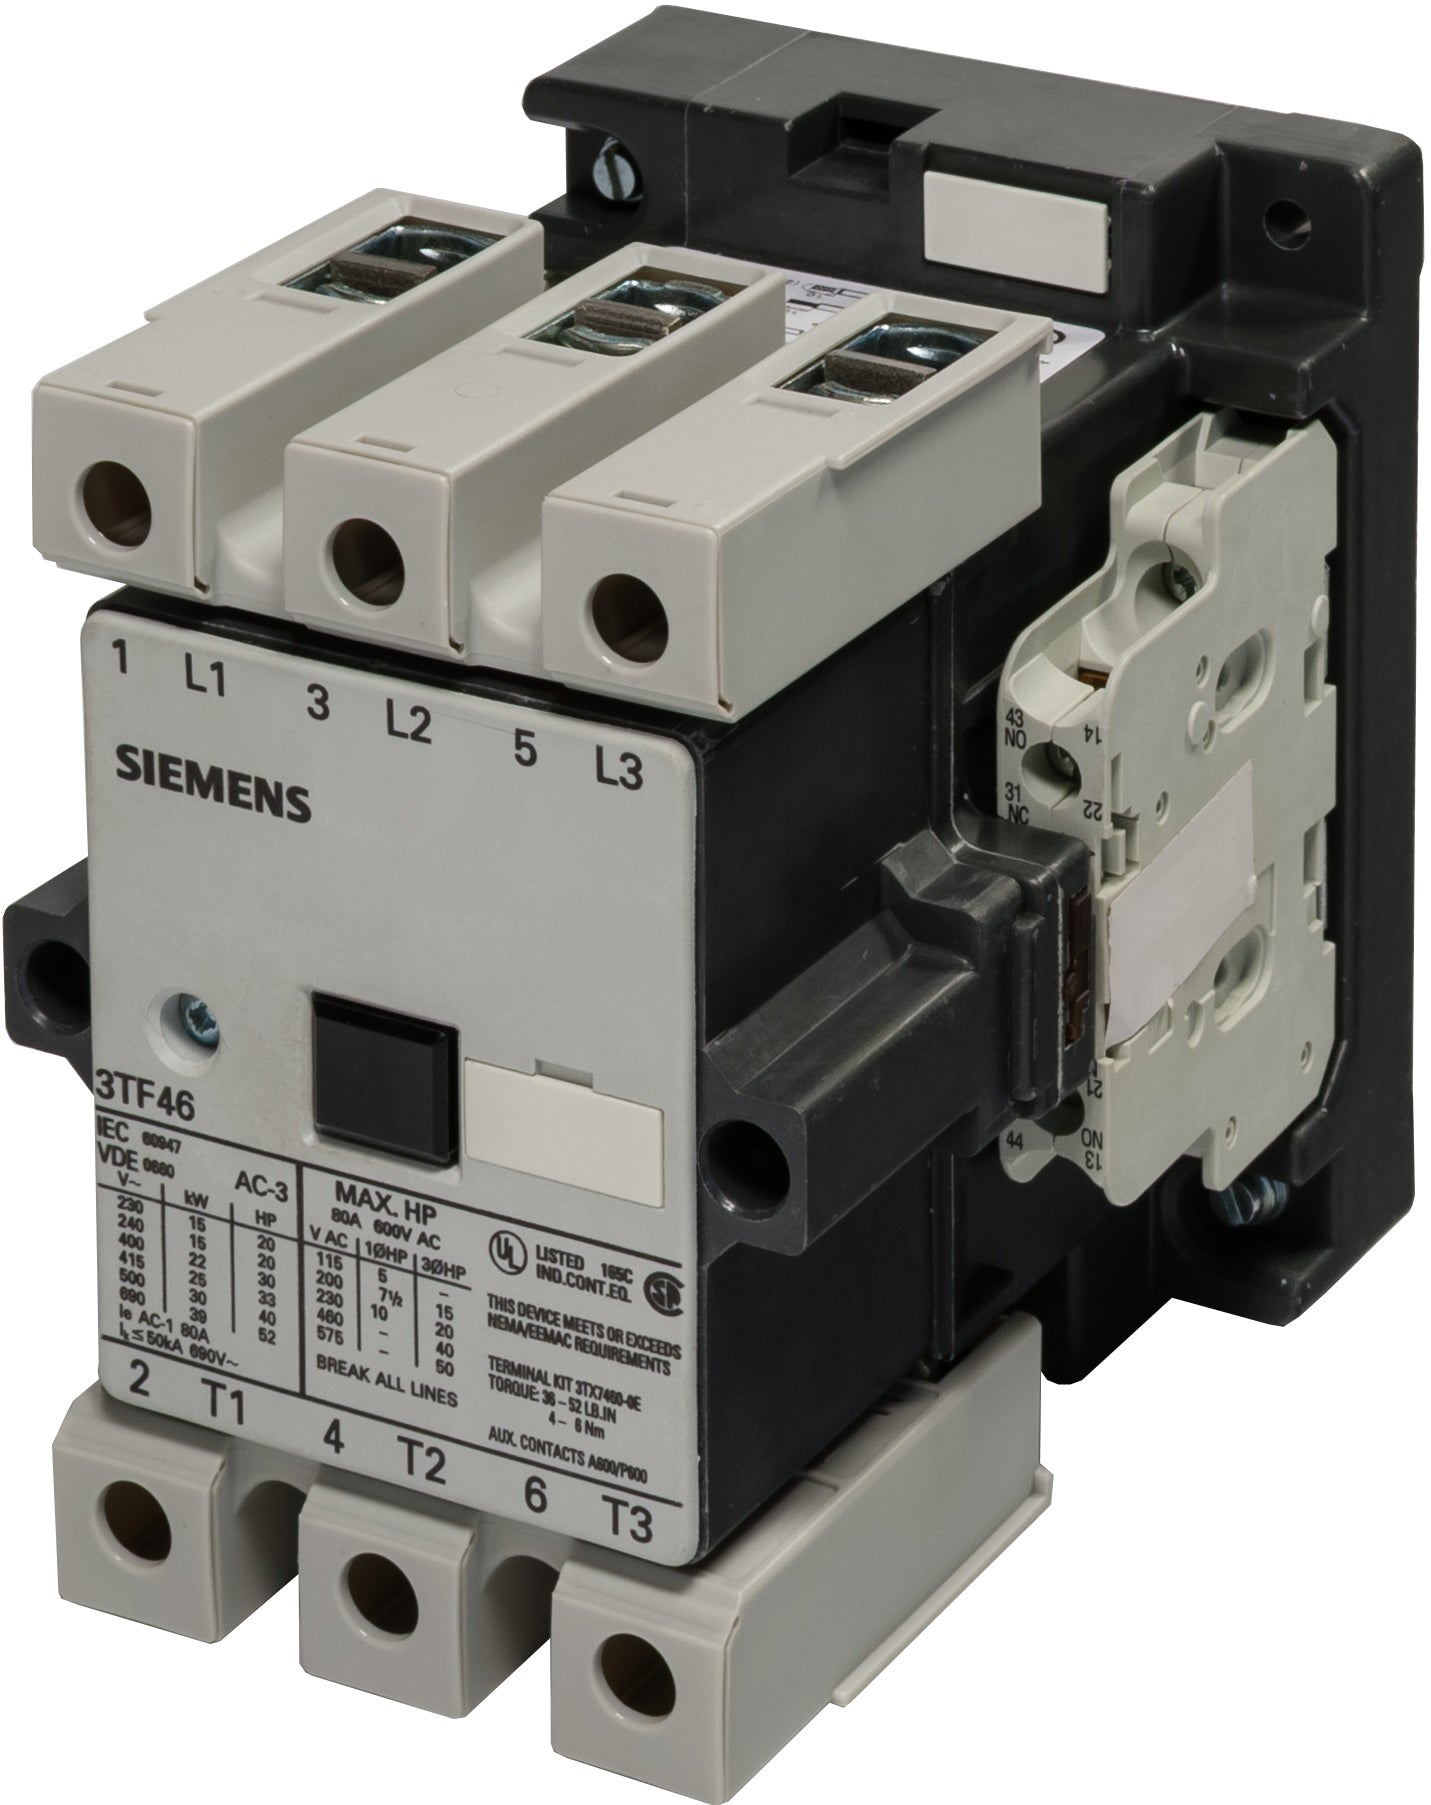 3tf46 contactors motor starters siemens request more information for 3tf46 asfbconference2016 Choice Image